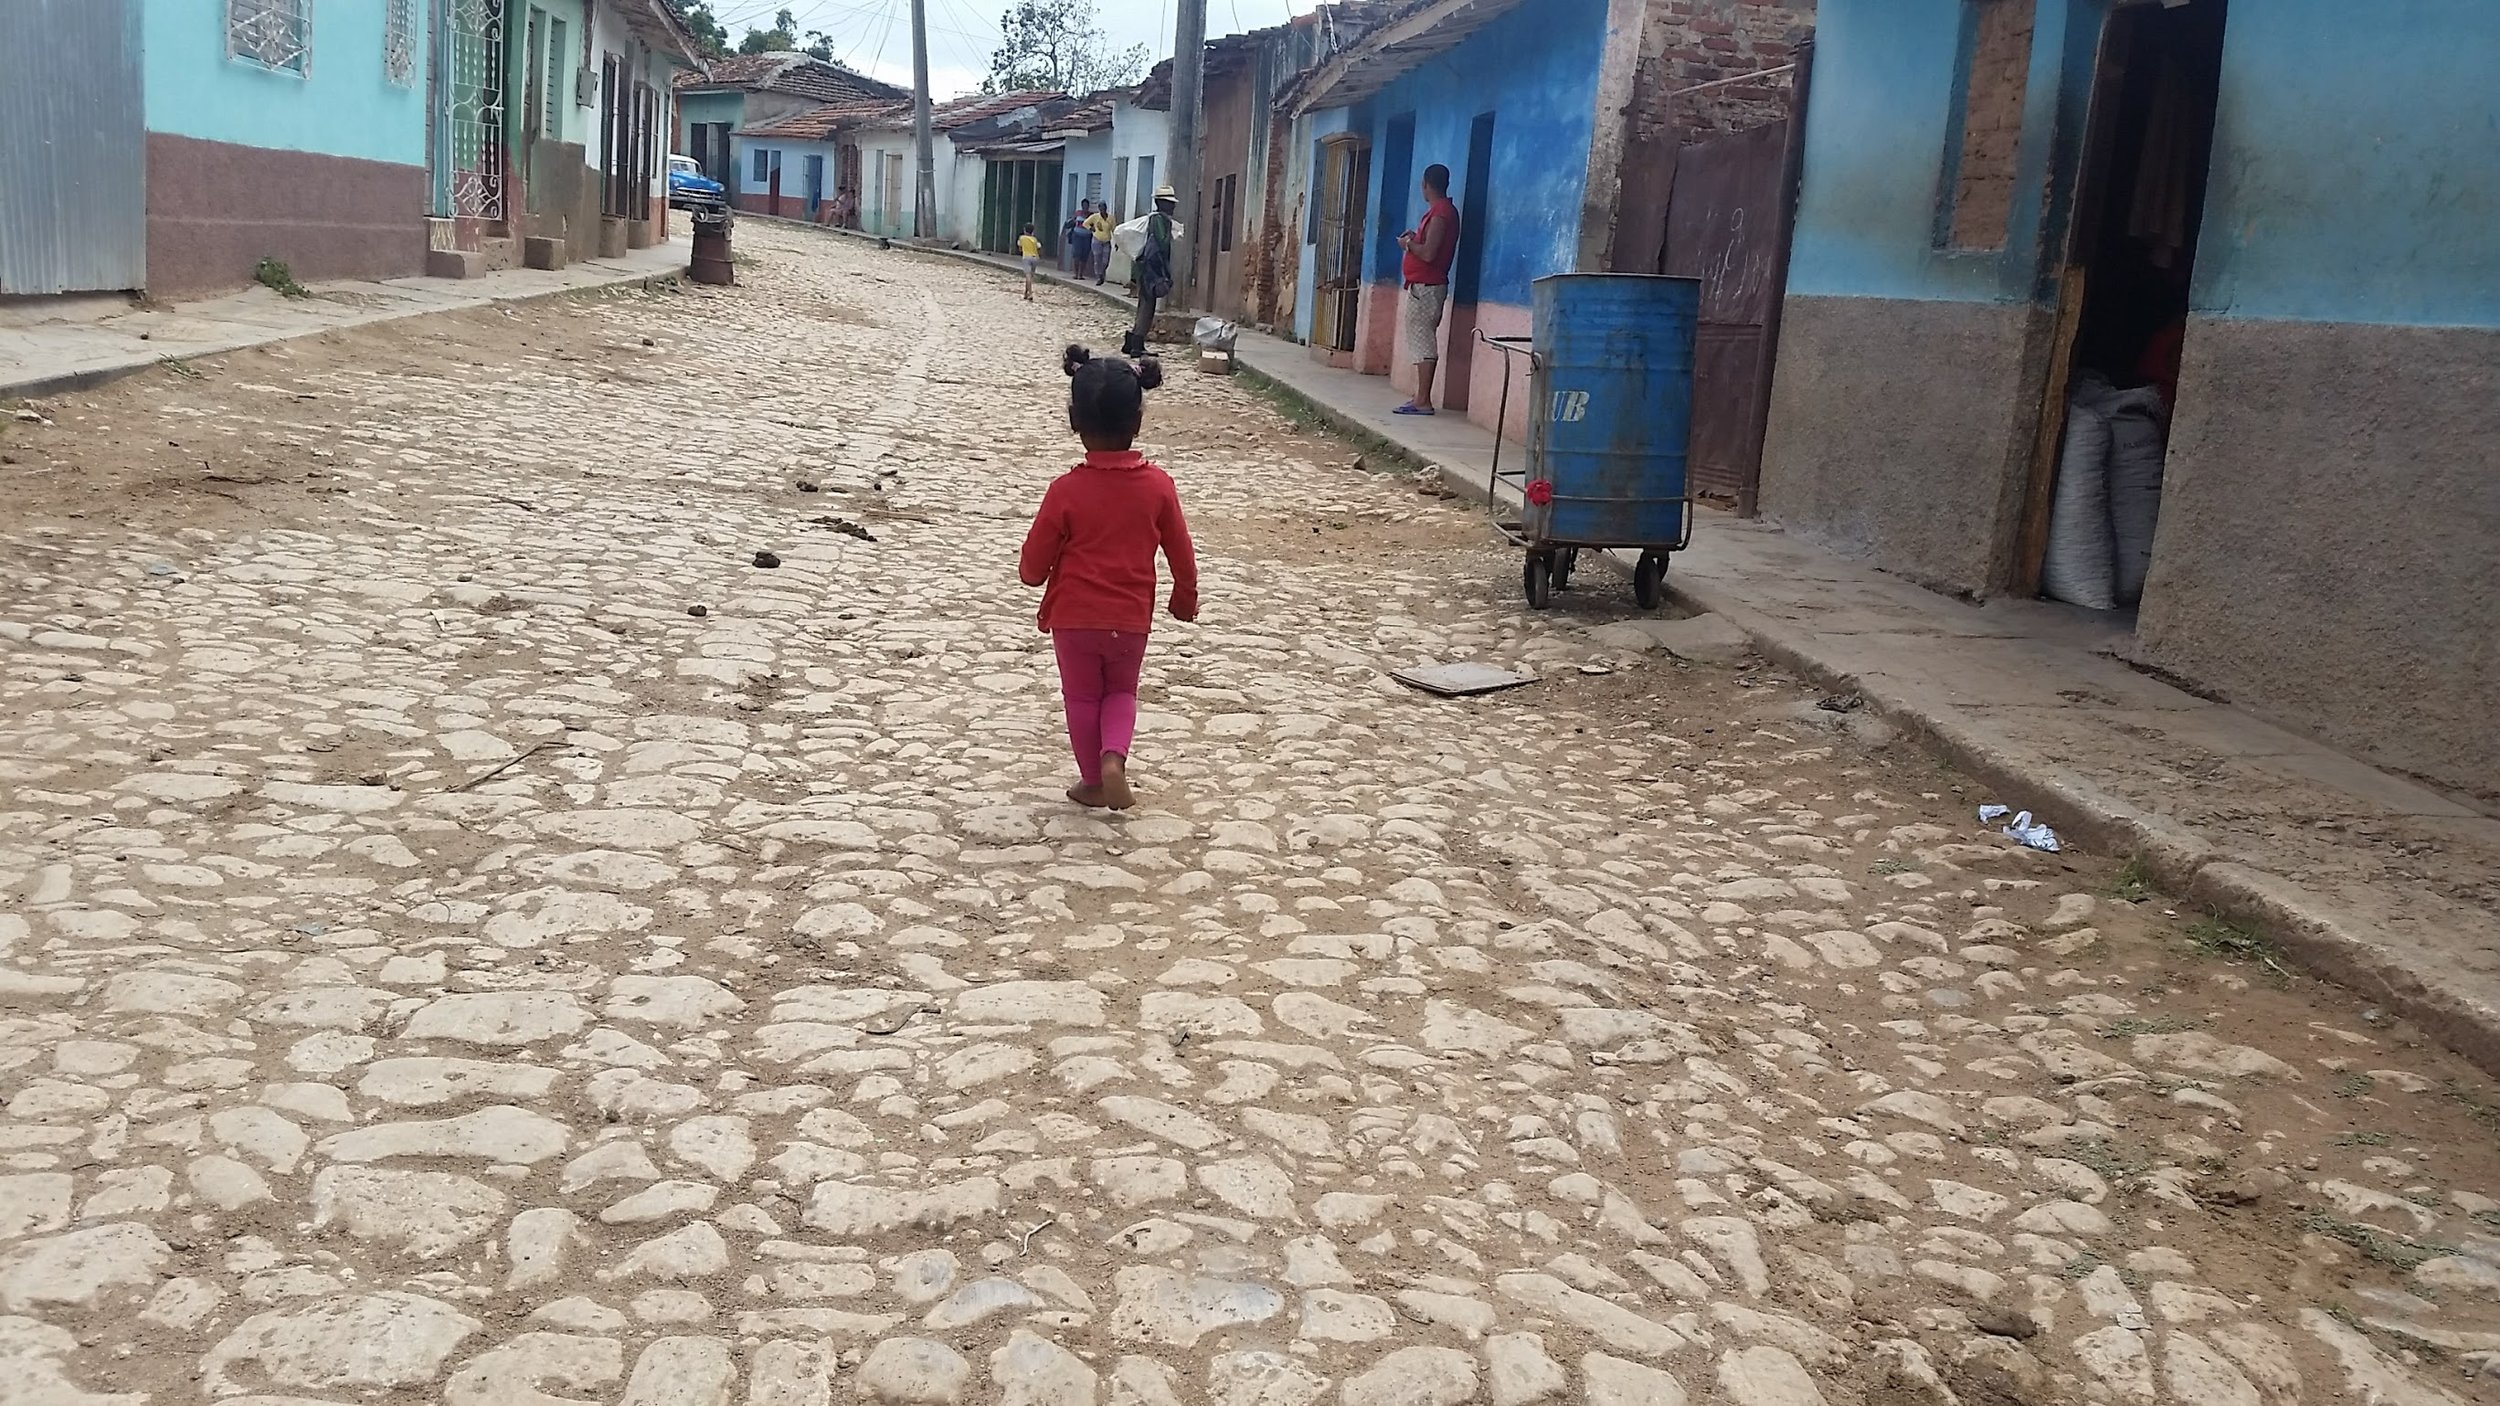 A toddler learning to walk